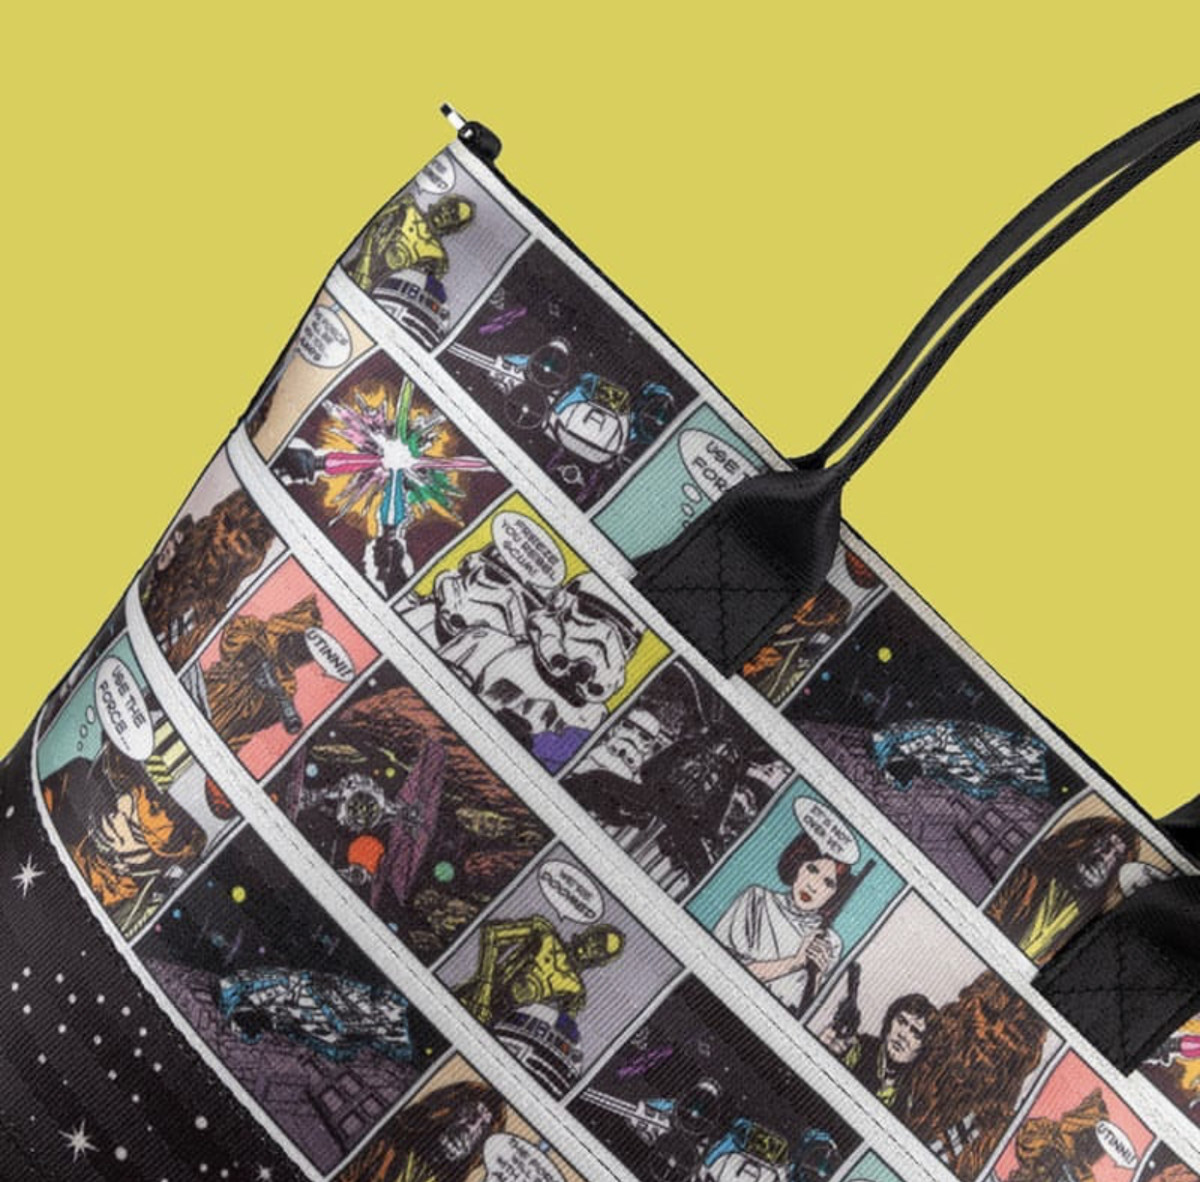 Sneak Peek Of New Harveys Star Wars Bags - They're Out Of This World 4